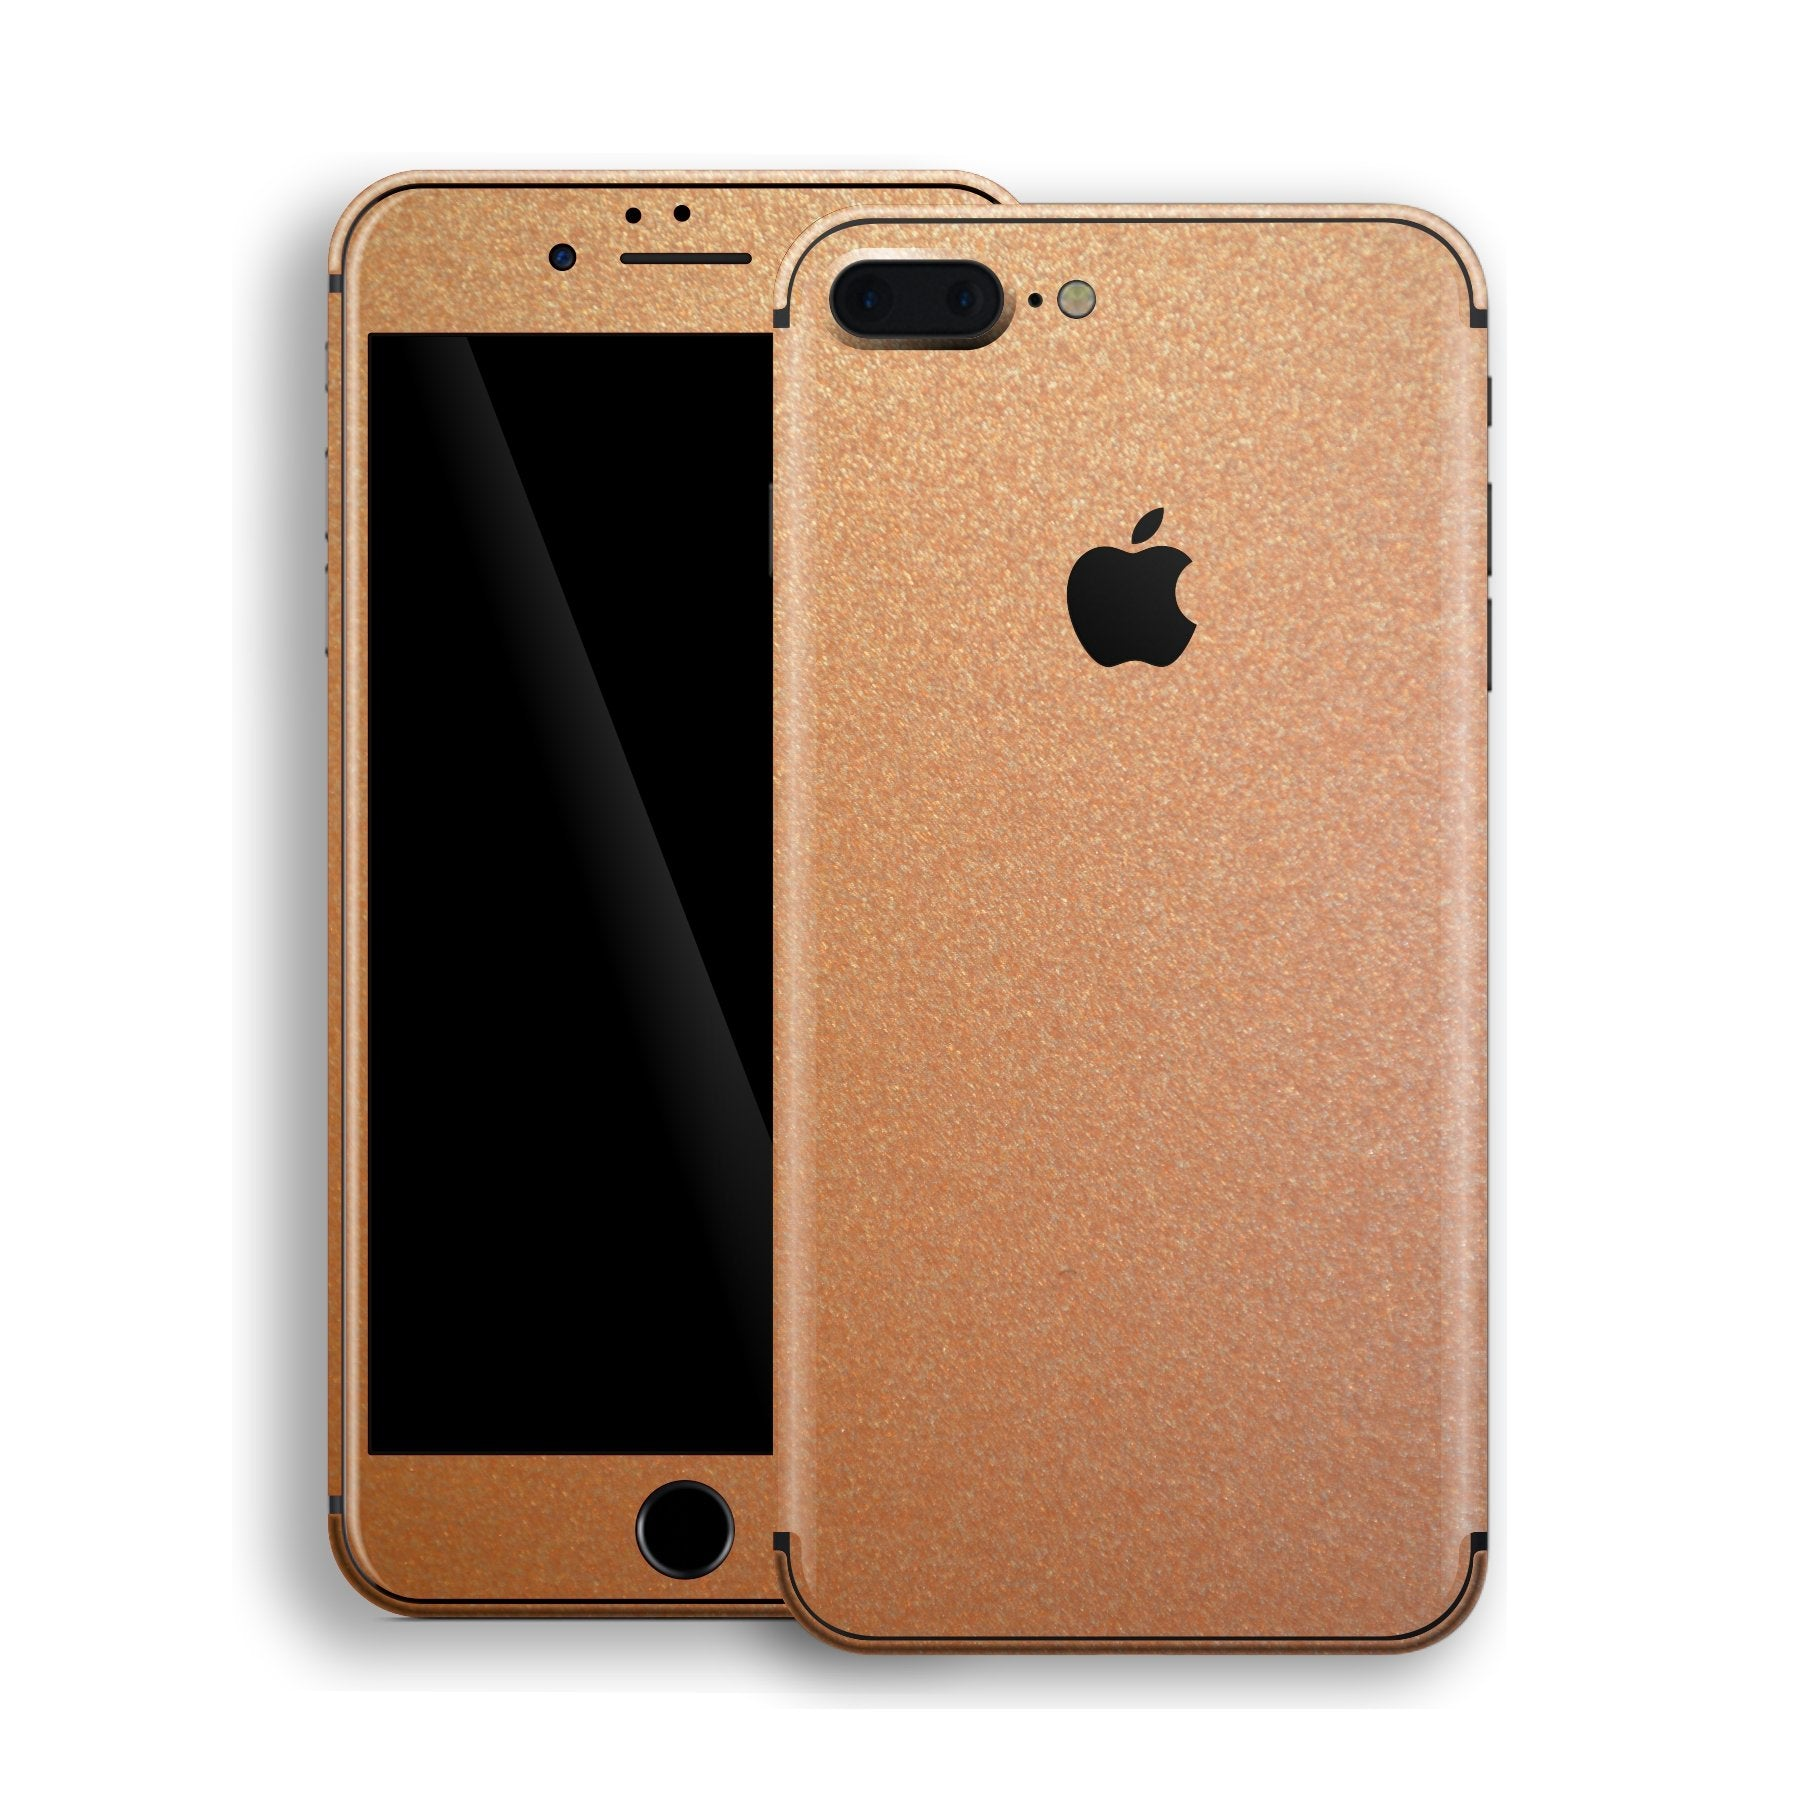 iPhone 8 Plus Copper Matt Metallic Skin, Decal, Wrap, Protector, Cover by EasySkinz | EasySkinz.com